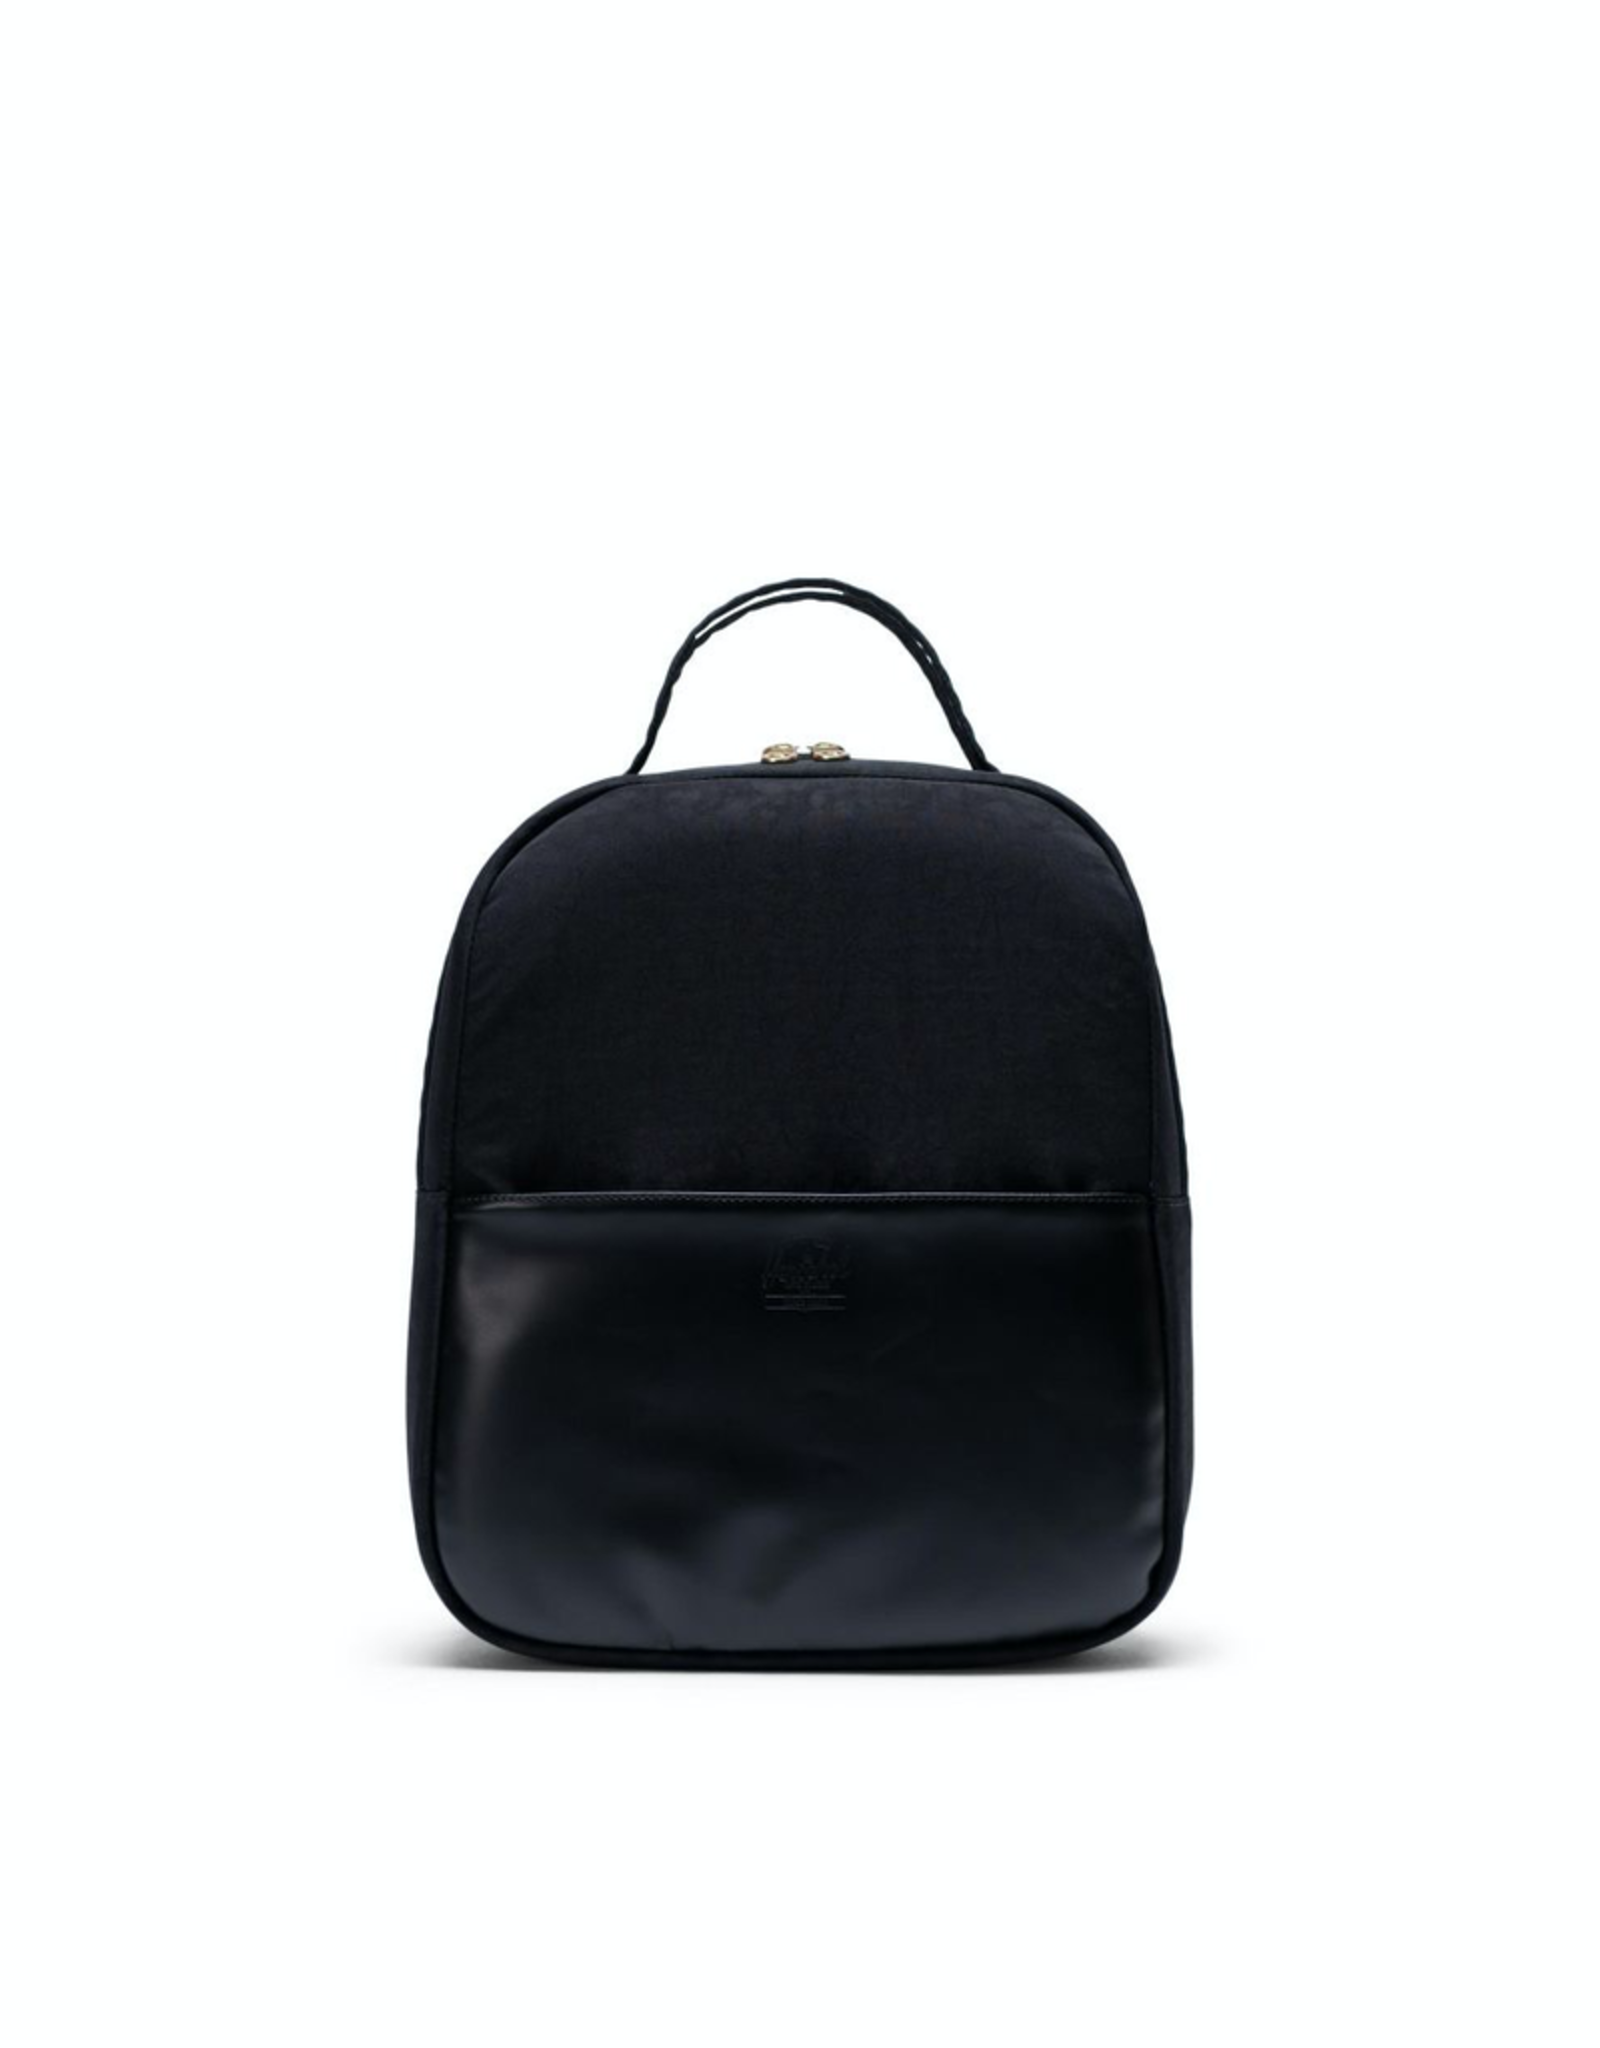 Herschel Supply Co. Orion Backpack | Small in Black